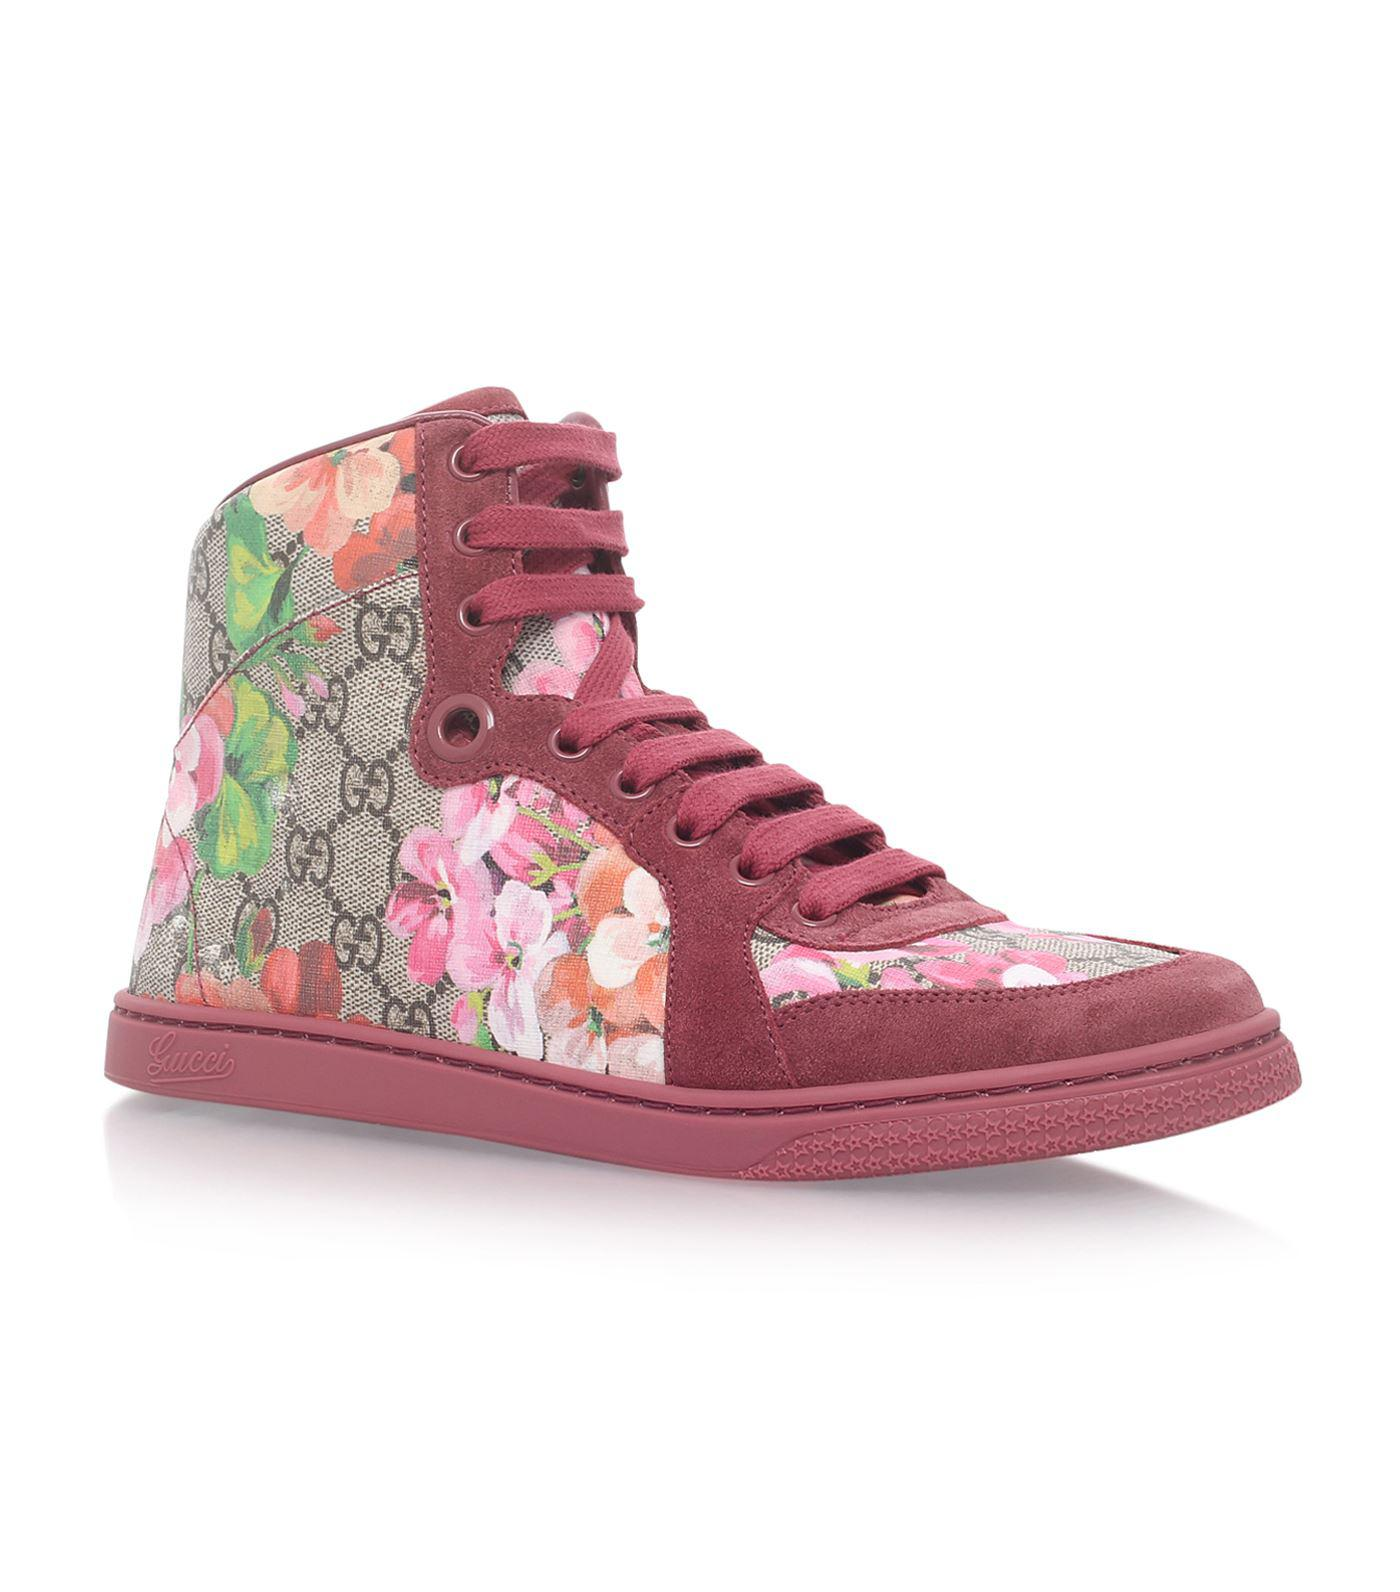 5c97cd6ec Lyst - Gucci Coda High Top Sneakers in Pink